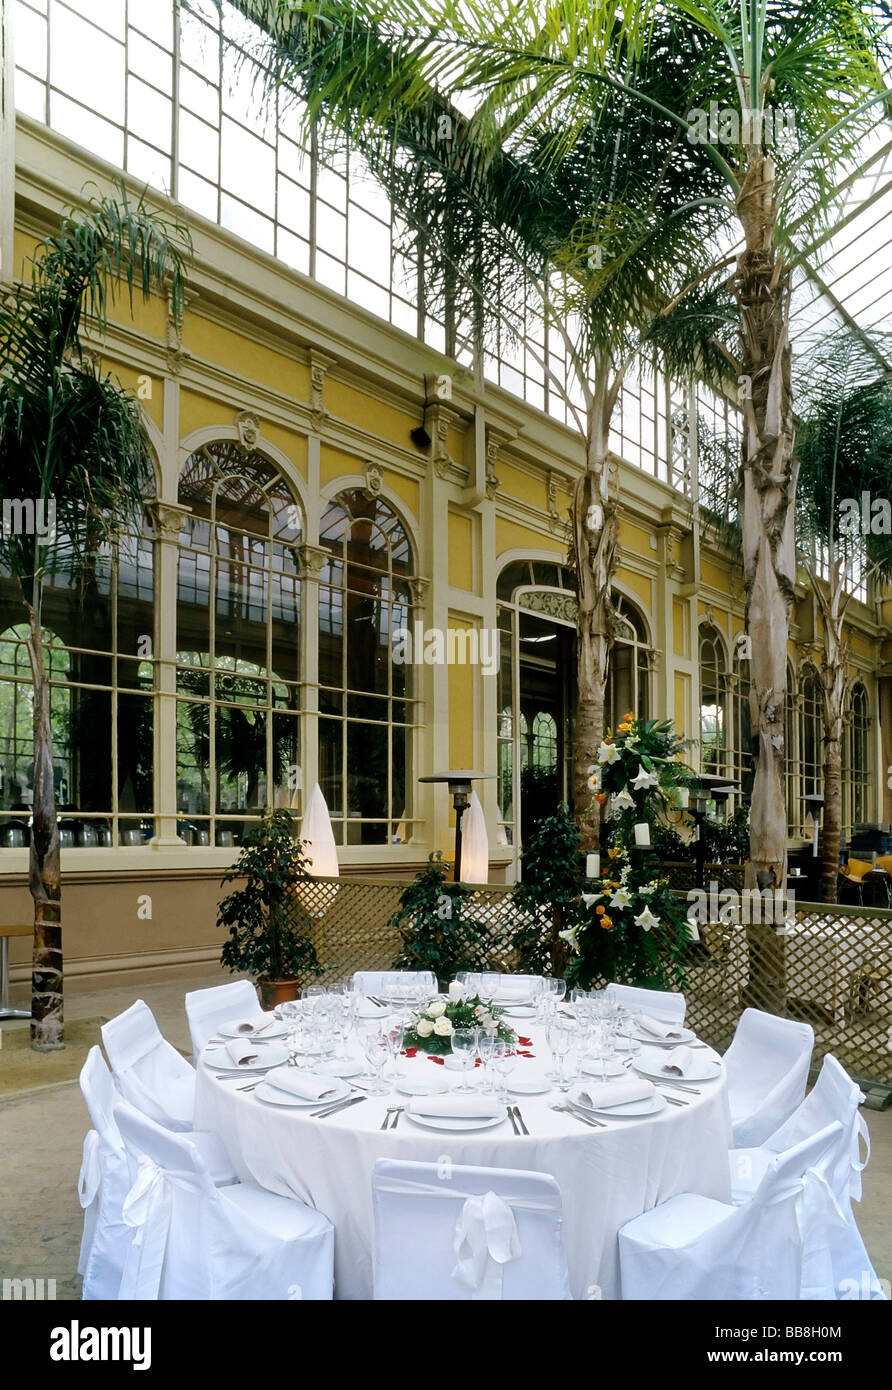 Beautifully set round table restaurant in conservatory building from the 19th century L\u0027Hivernacle Parc de la Ciutadella Ba & Beautifully set round table restaurant in conservatory building ...